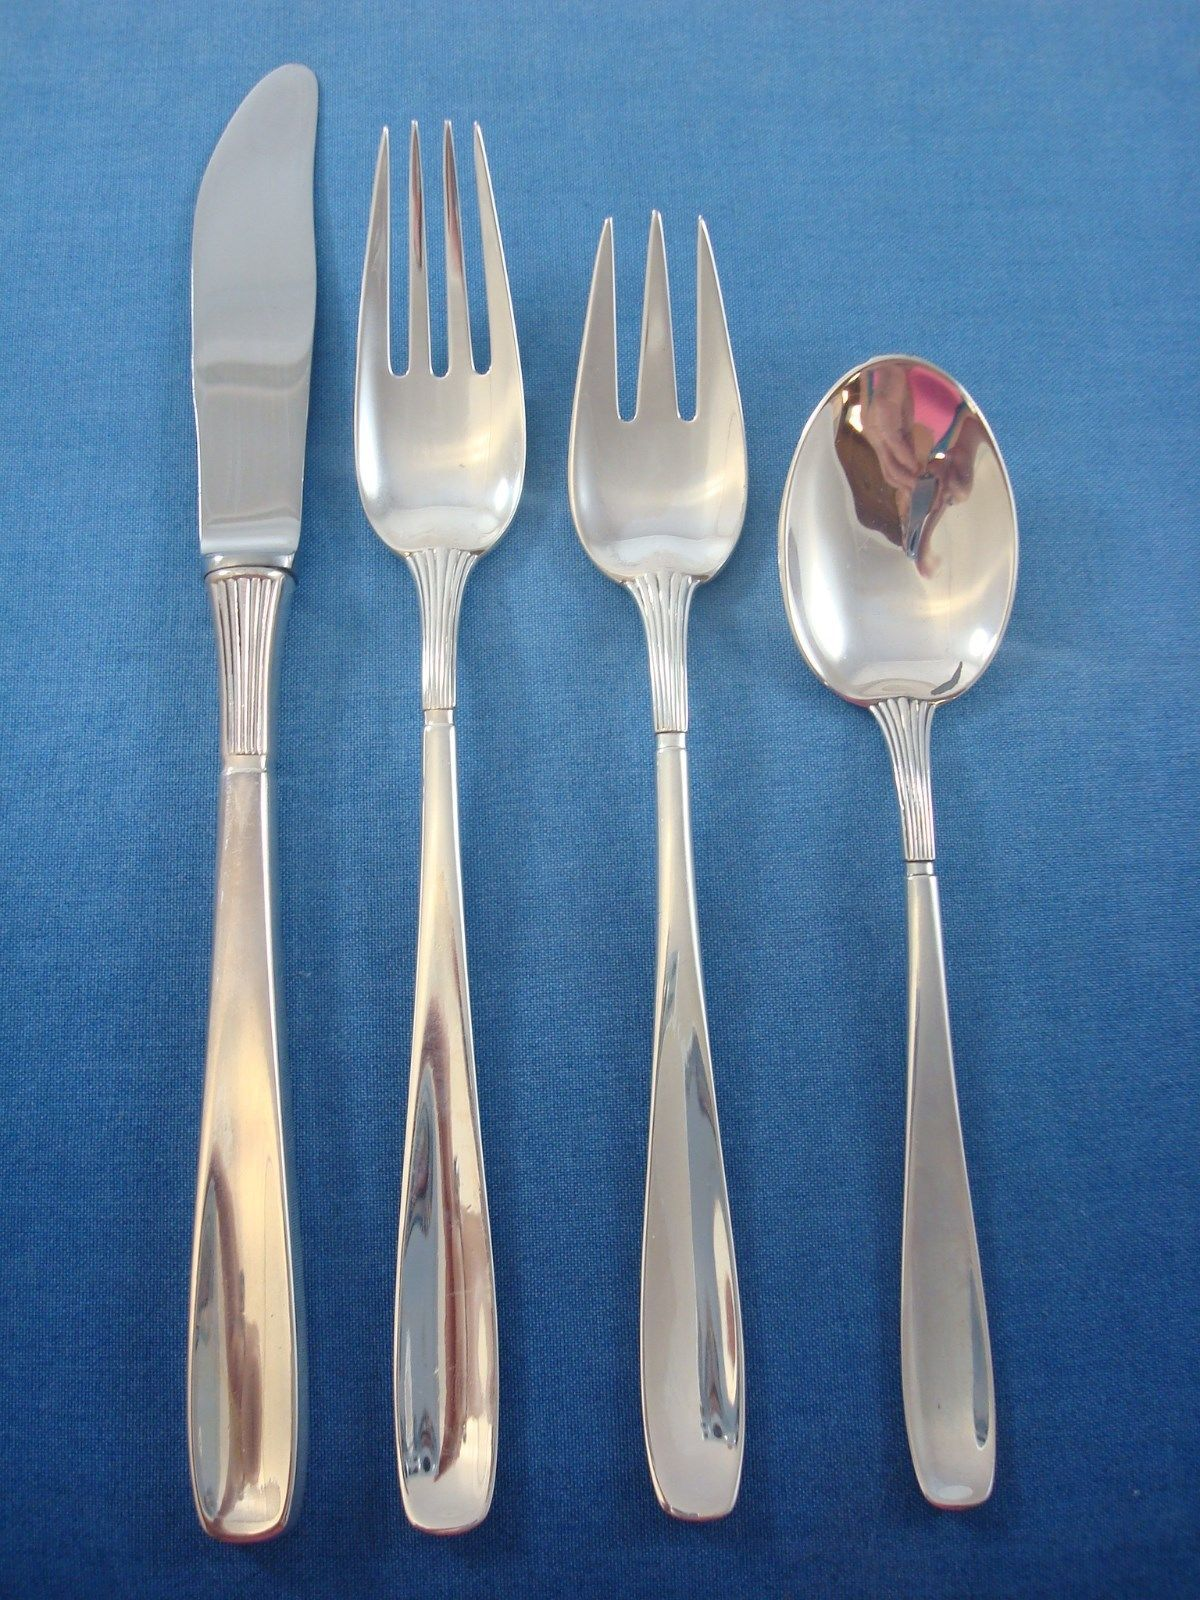 Ascot by sorensen sterling silver danish modern flatware set service 50 pieces for sale at 1stdibs - Danish modern flatware ...